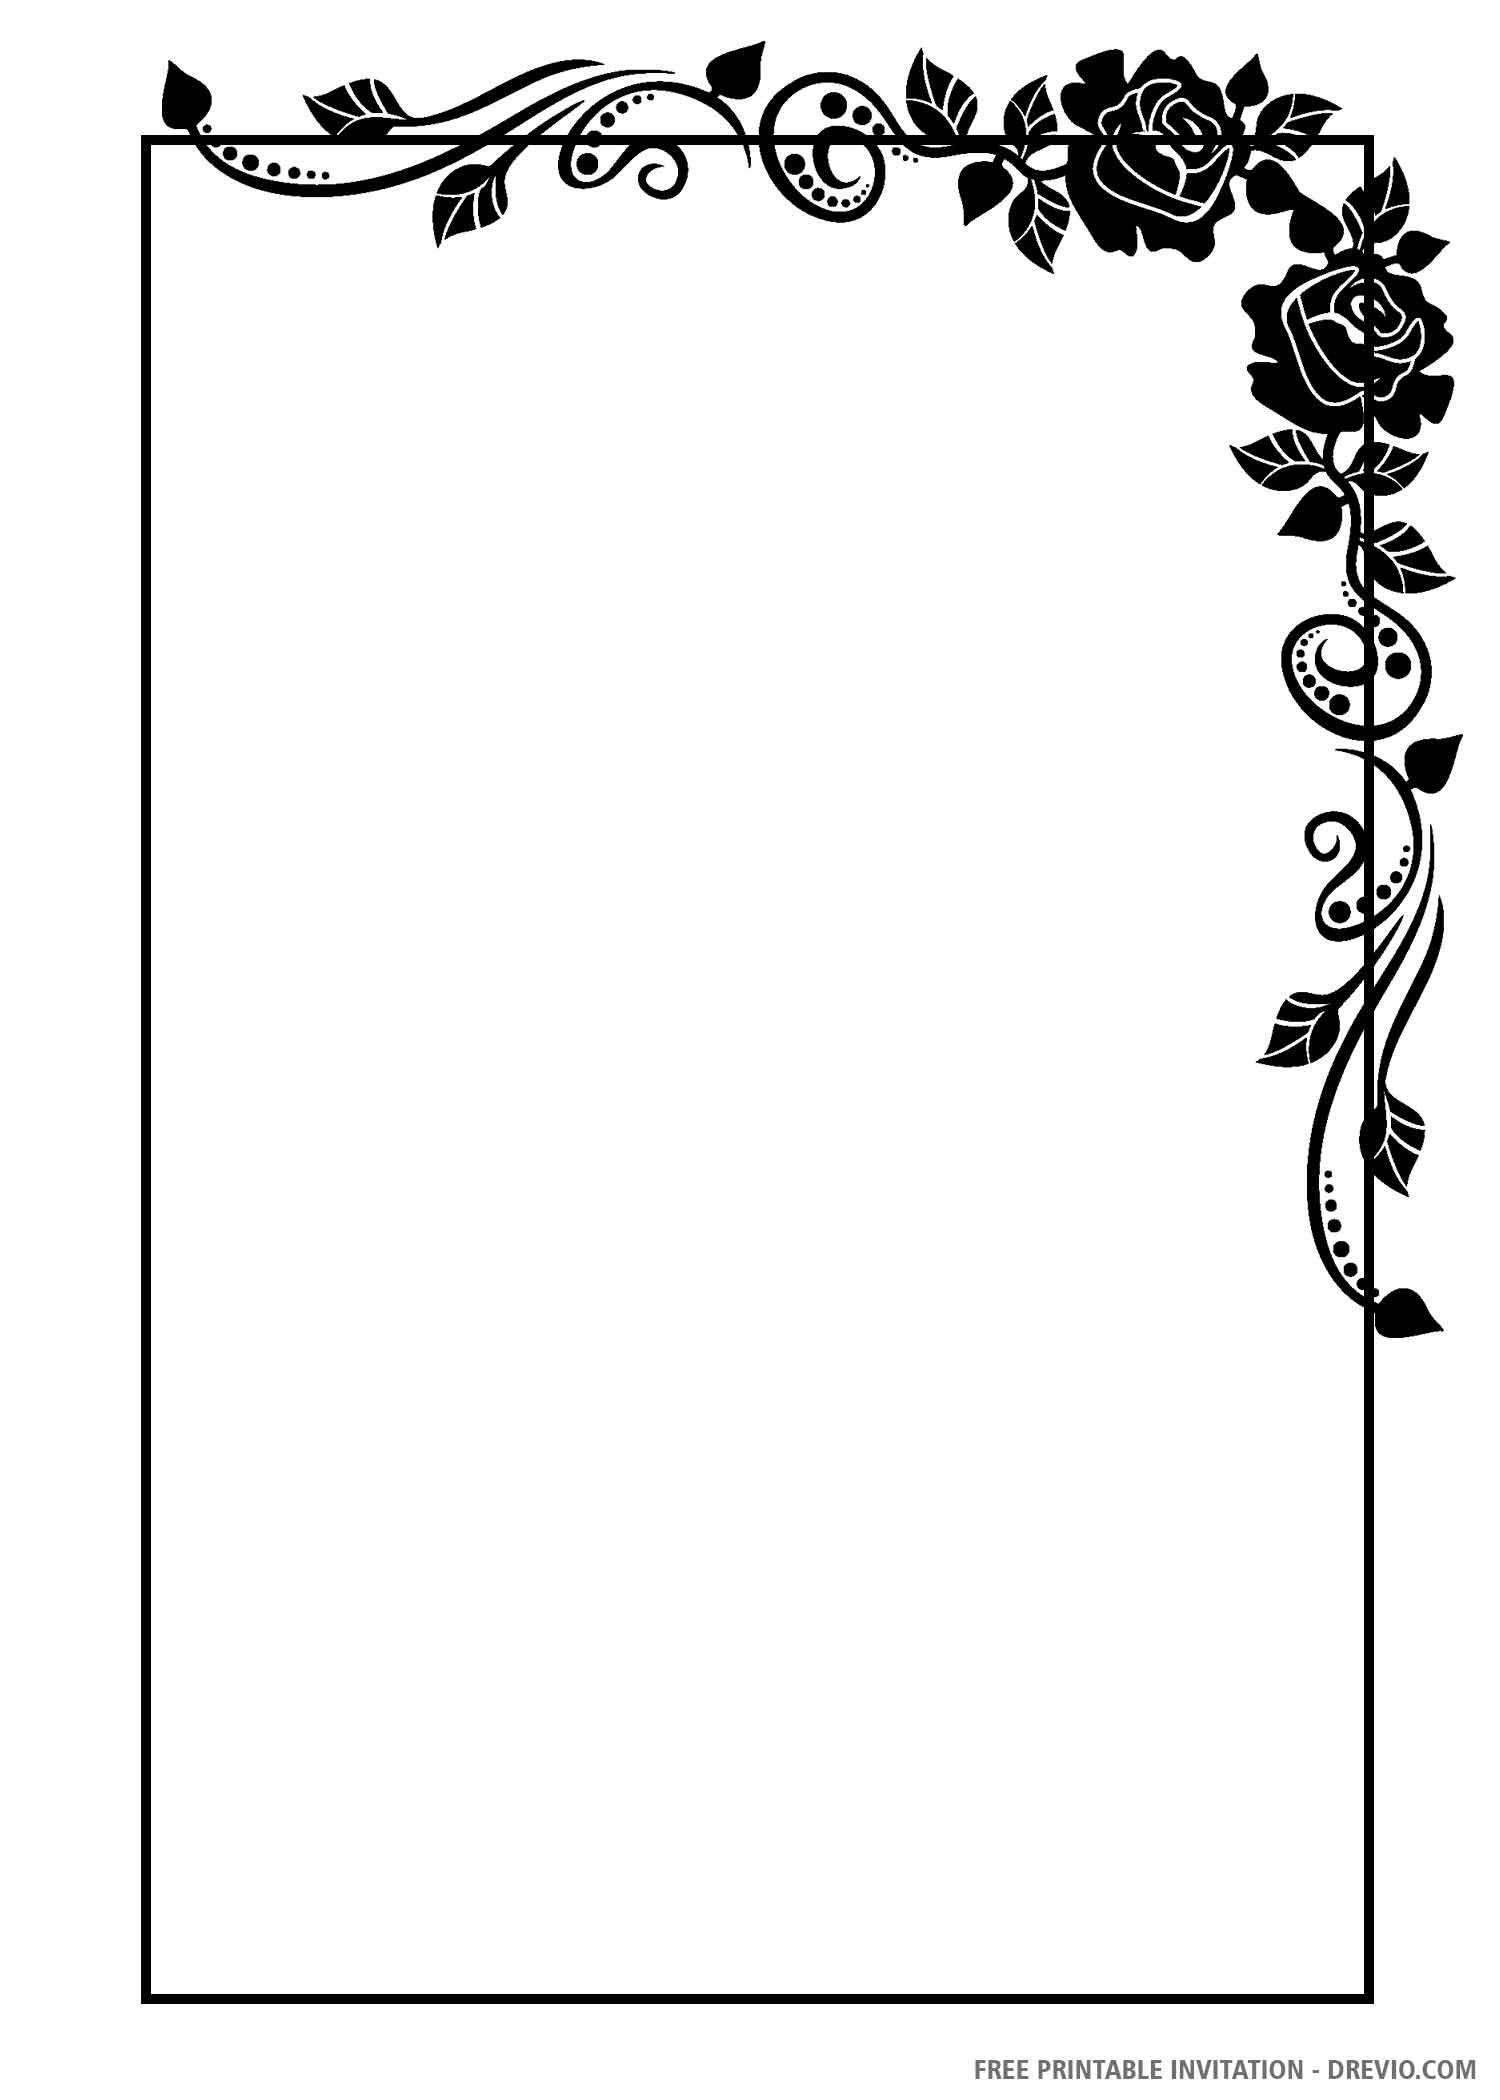 Free Printable Black And White Floral Wedding Invitation Templates Drevio In 2020 Wedding Invitations Borders Floral Wedding Invitations Designs Coloring Books